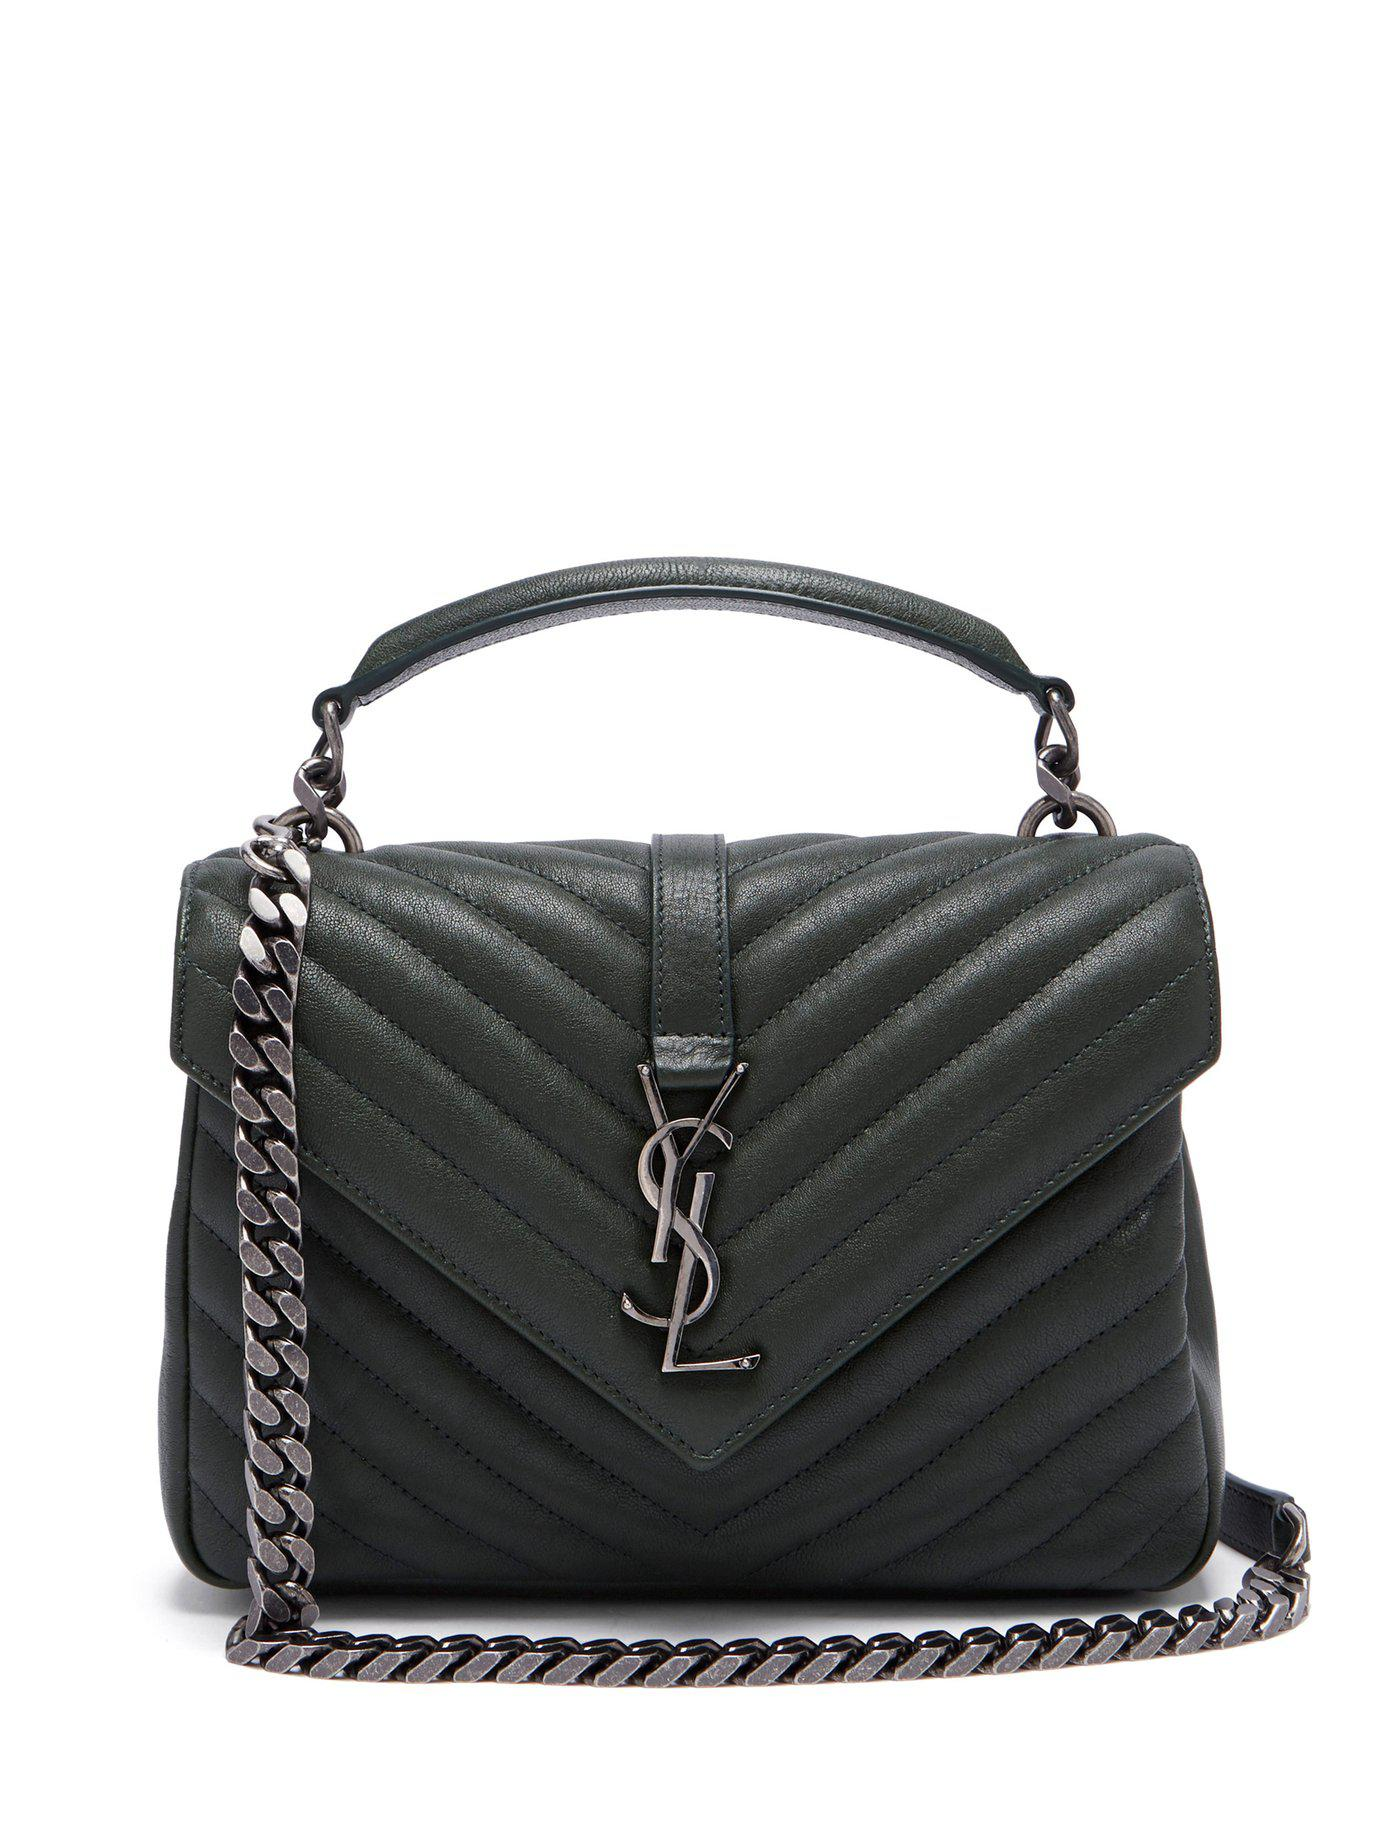 Lyst - Saint Laurent Collège Medium Quilted Leather Cross Body Bag ... 22977efc8f47f